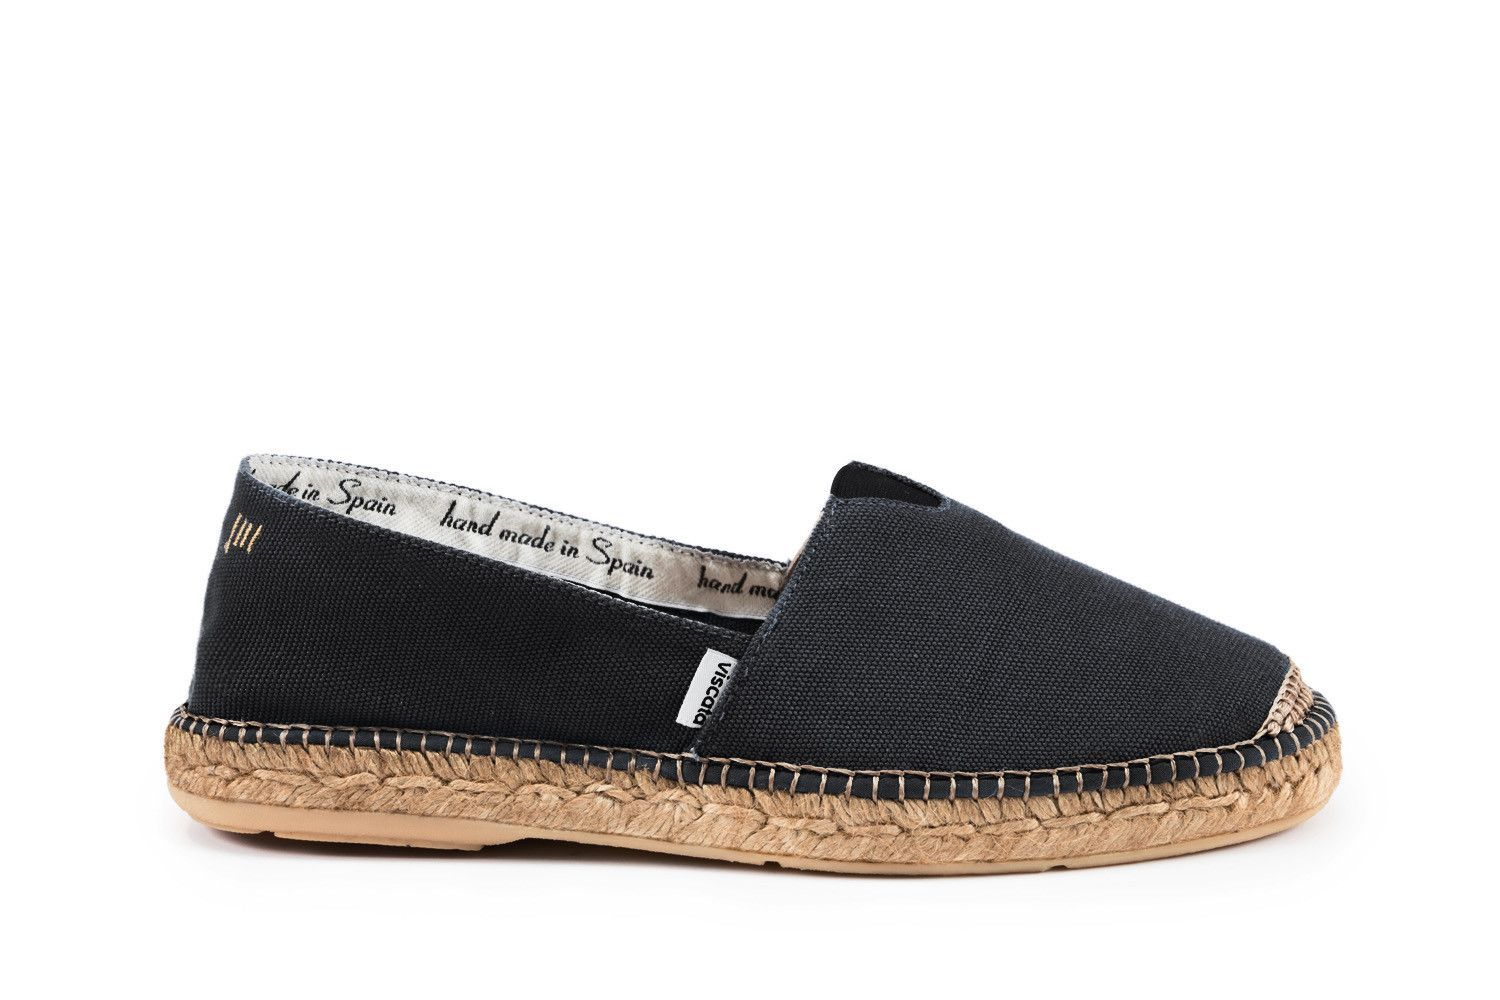 974f977de8f Barcelona Canvas Espadrilles - Black (w/ Elastic Inseam) | Products ...